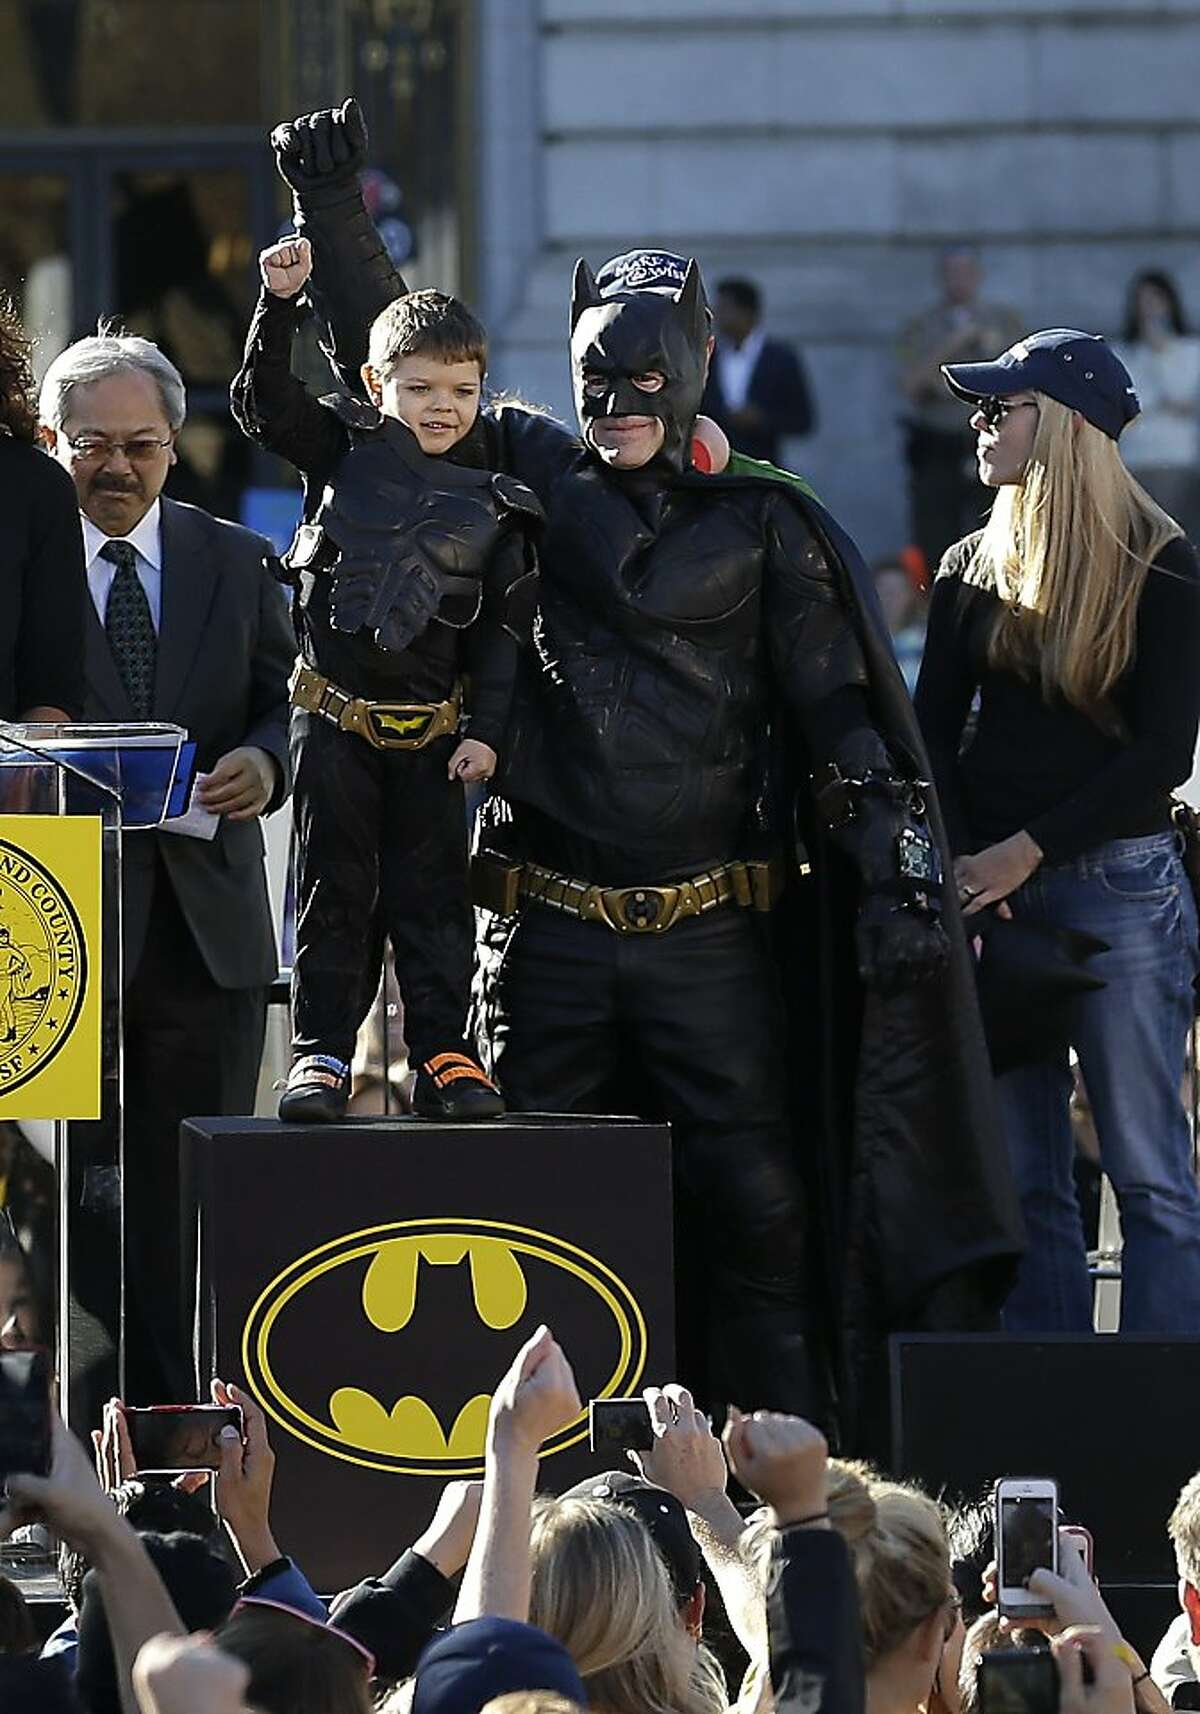 """Miles Scott, dressed as Batkid, second from left, raises his arm next to Batman at a rally outside of City Hall with Mayor Ed Lee, left, and his mother Natalie Scott in San Francisco, Friday, Nov. 15, 2013. Scott was called into service on Friday morning by San Francisco Police Chief Greg Suhr to help fight crime, as San Francisco turned into Gotham City as city officials helped fulfill the 5-year-old leukemia patient's wish to be """"Batkid,"""" The Greater Bay Area Make-A-Wish Foundation says. He was diagnosed with leukemia when he was 18 months old, finished treatment in June and is now in remission, KGO-TV reported. (AP Photo/Jeff Chiu)"""